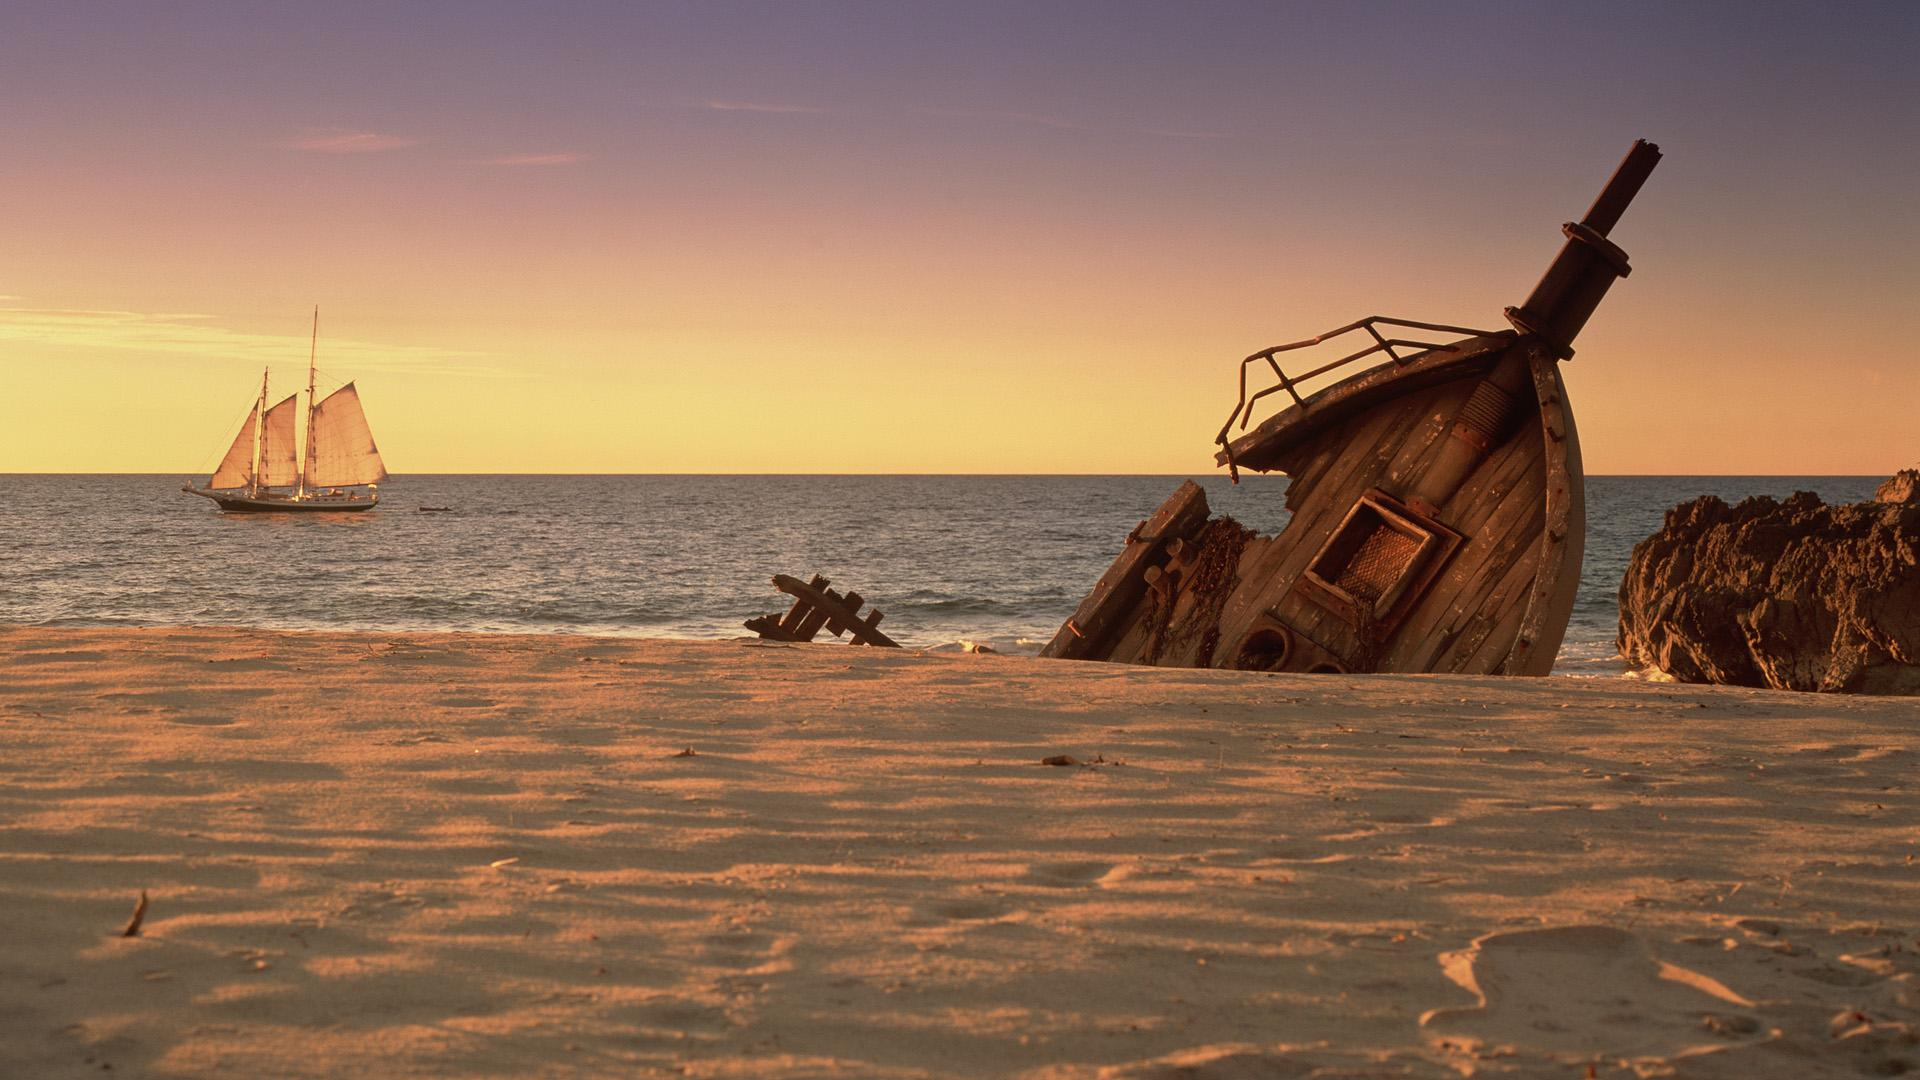 Shipwreck background 7 Background Check All 1920x1080